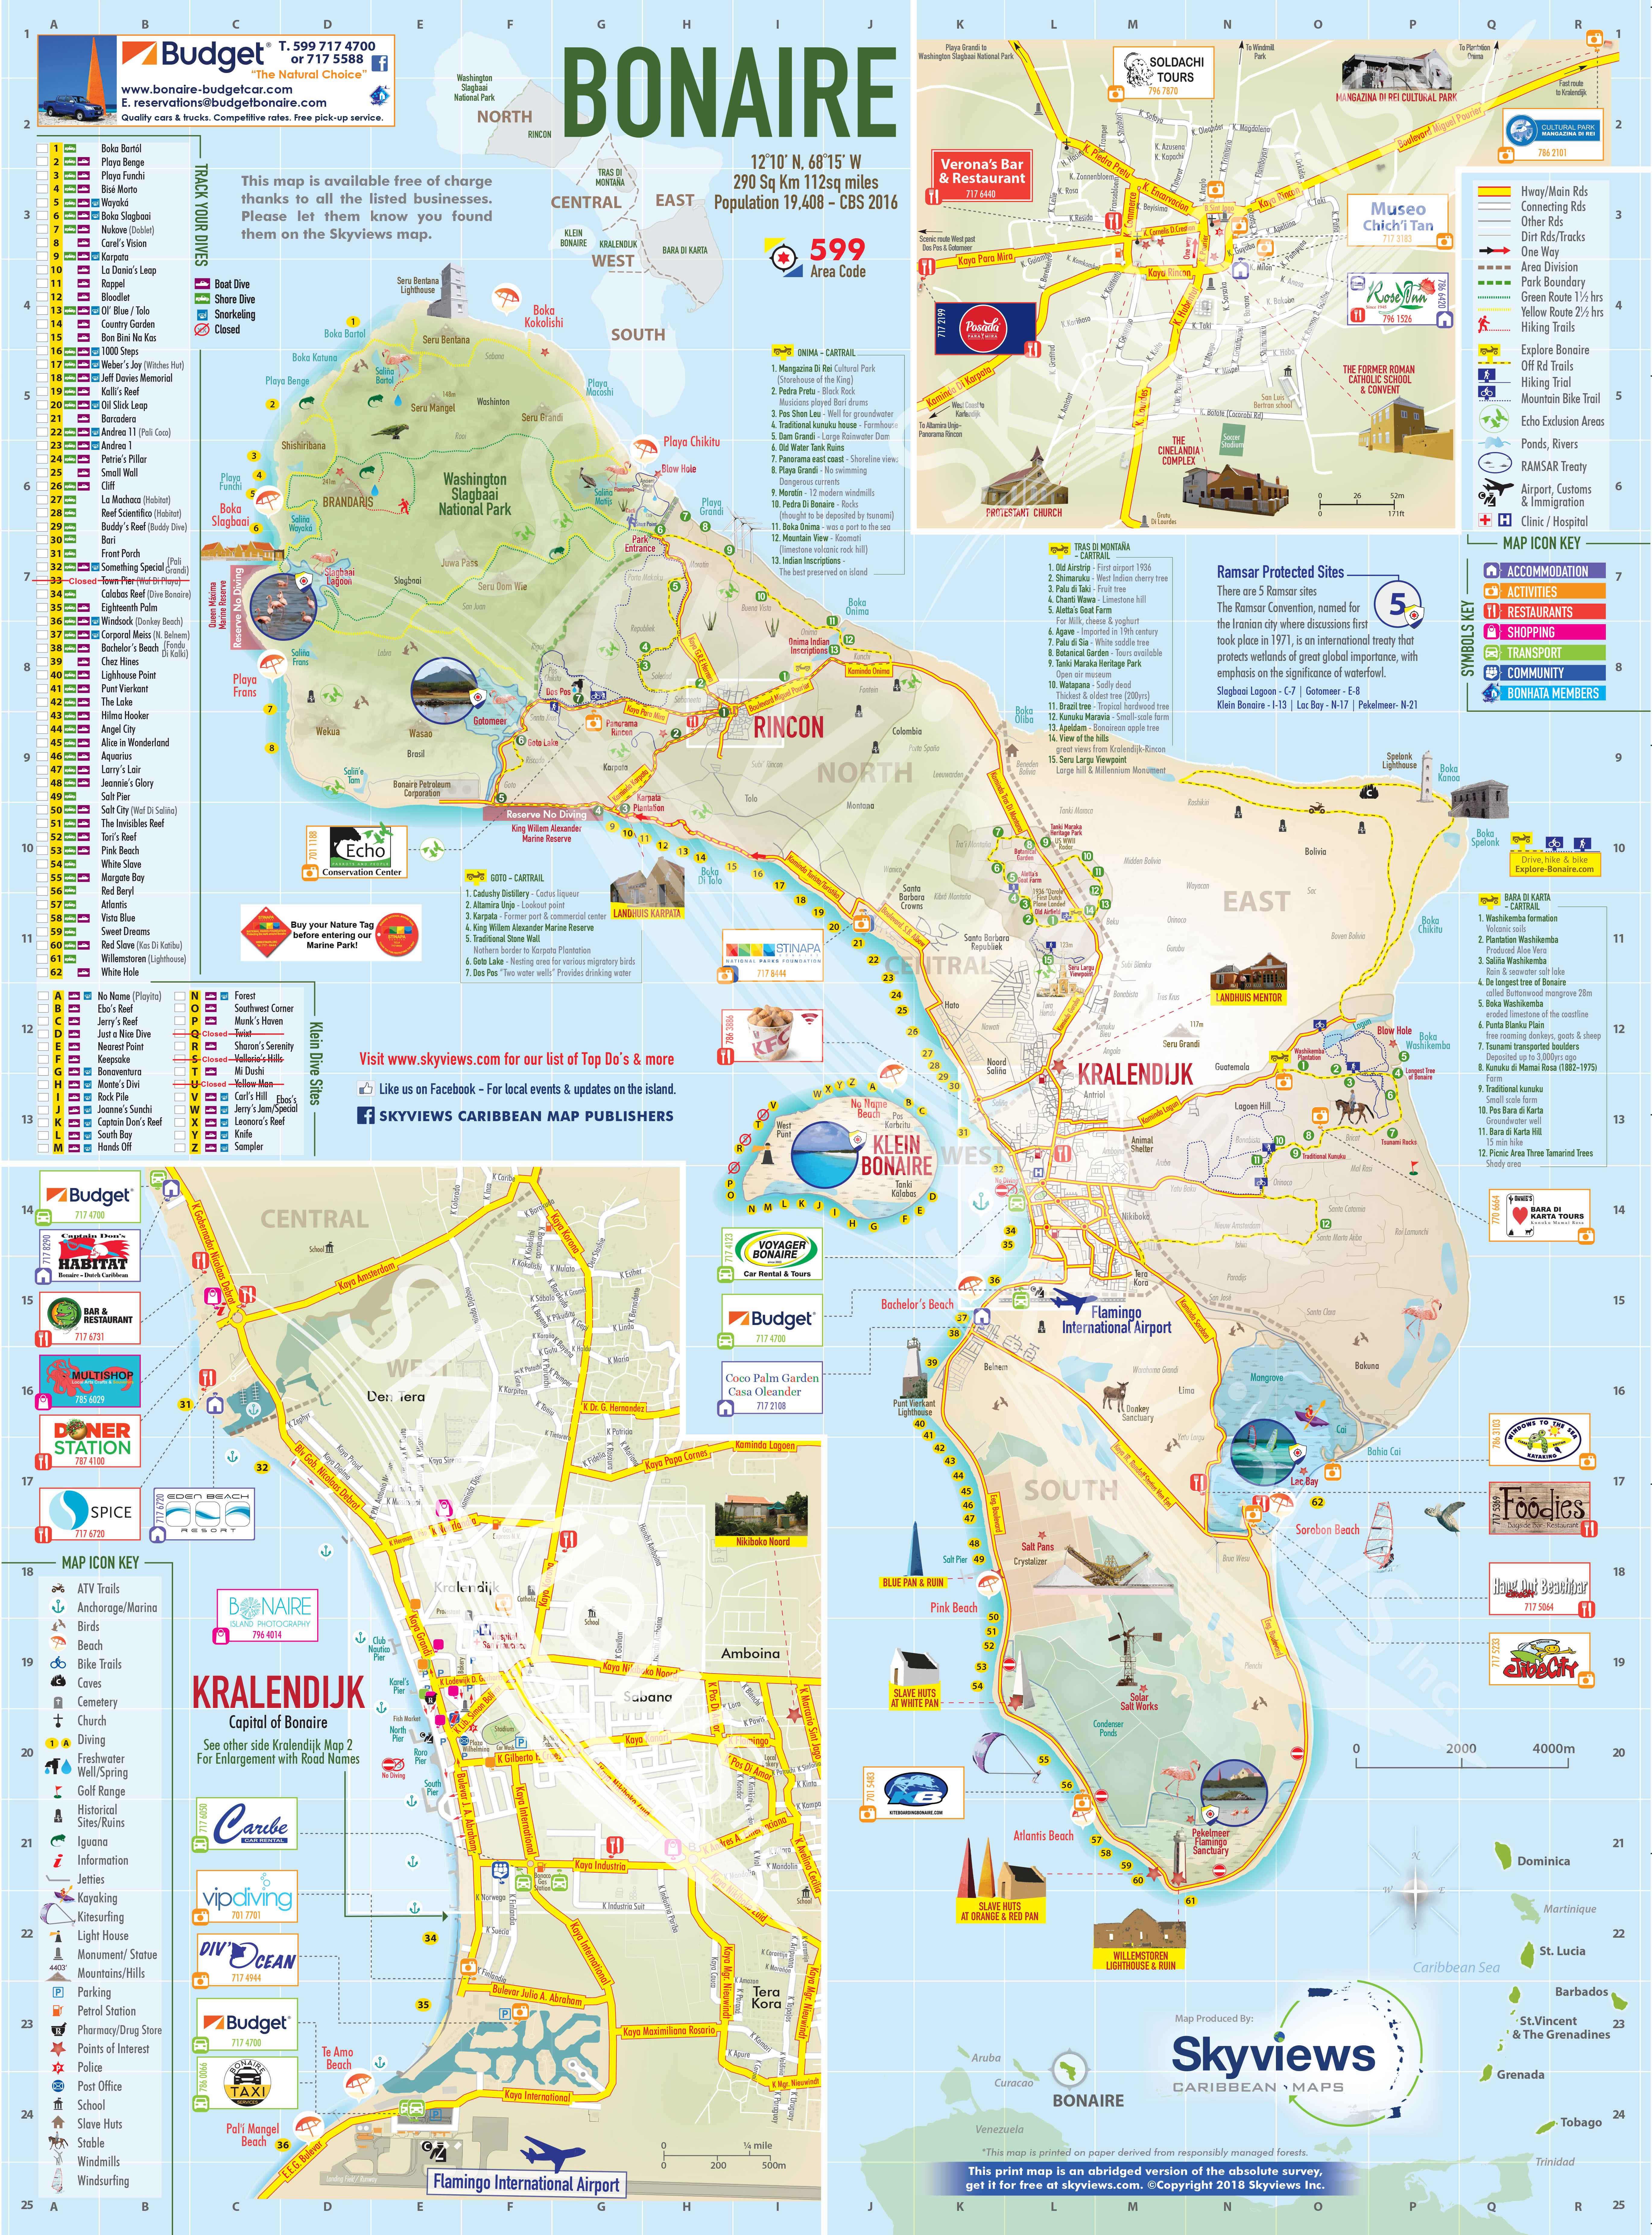 Map of Bonaire - Caribbean Islands Maps and Guides Designated Marketing Area Map on